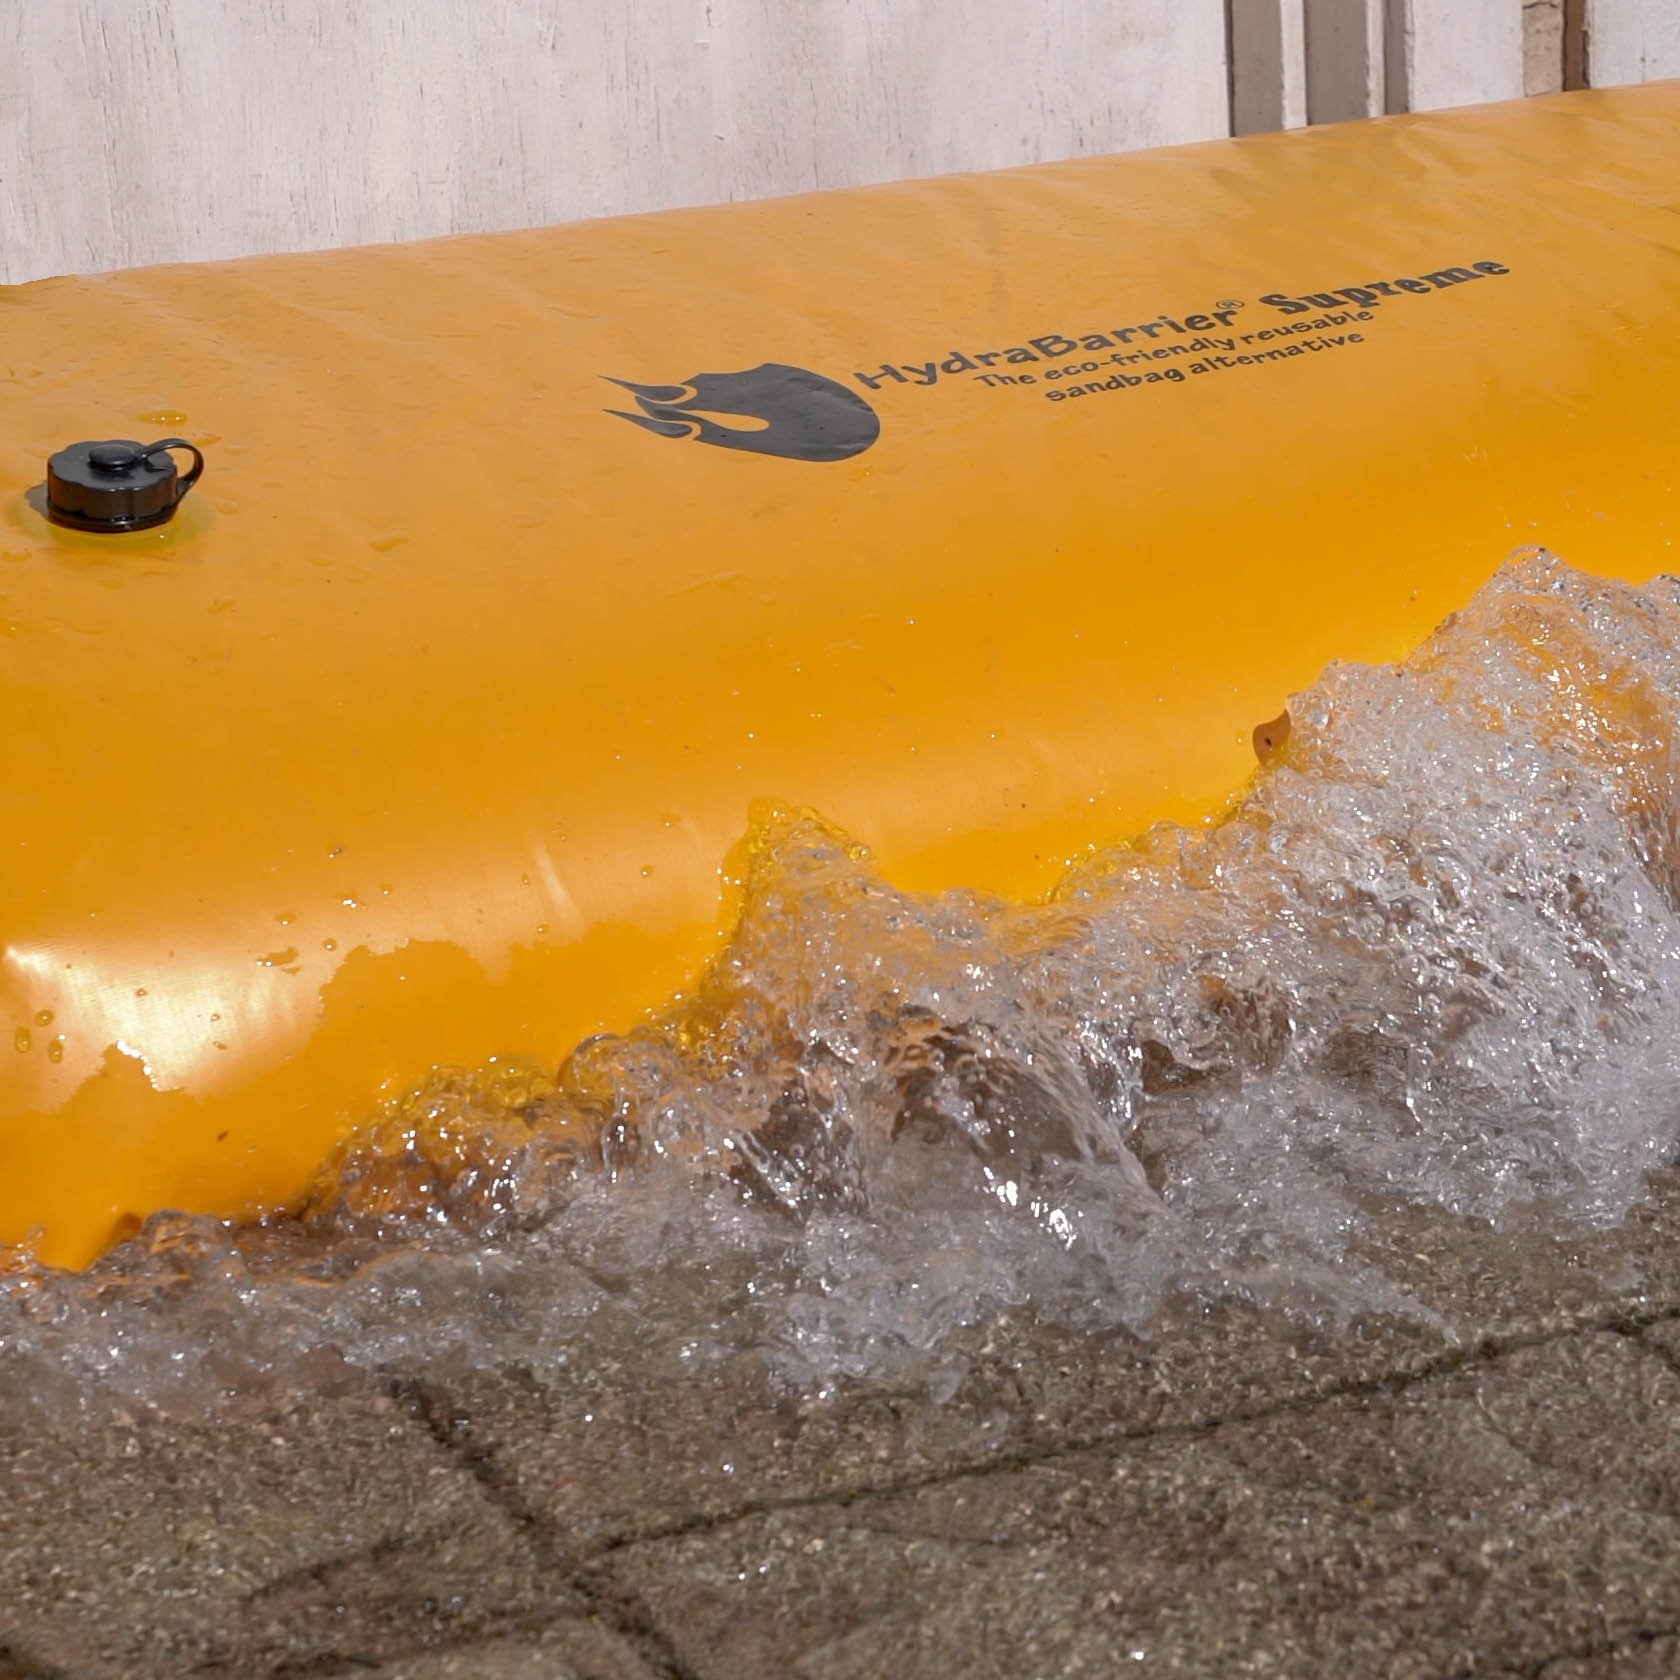 Best Sandbag Alternative - Hydrabarrier Supreme 6 Foot Length 12 Inch Height. - Water Diversion Tubes That are The Lightweight, Re-usable, and Eco-Friendly